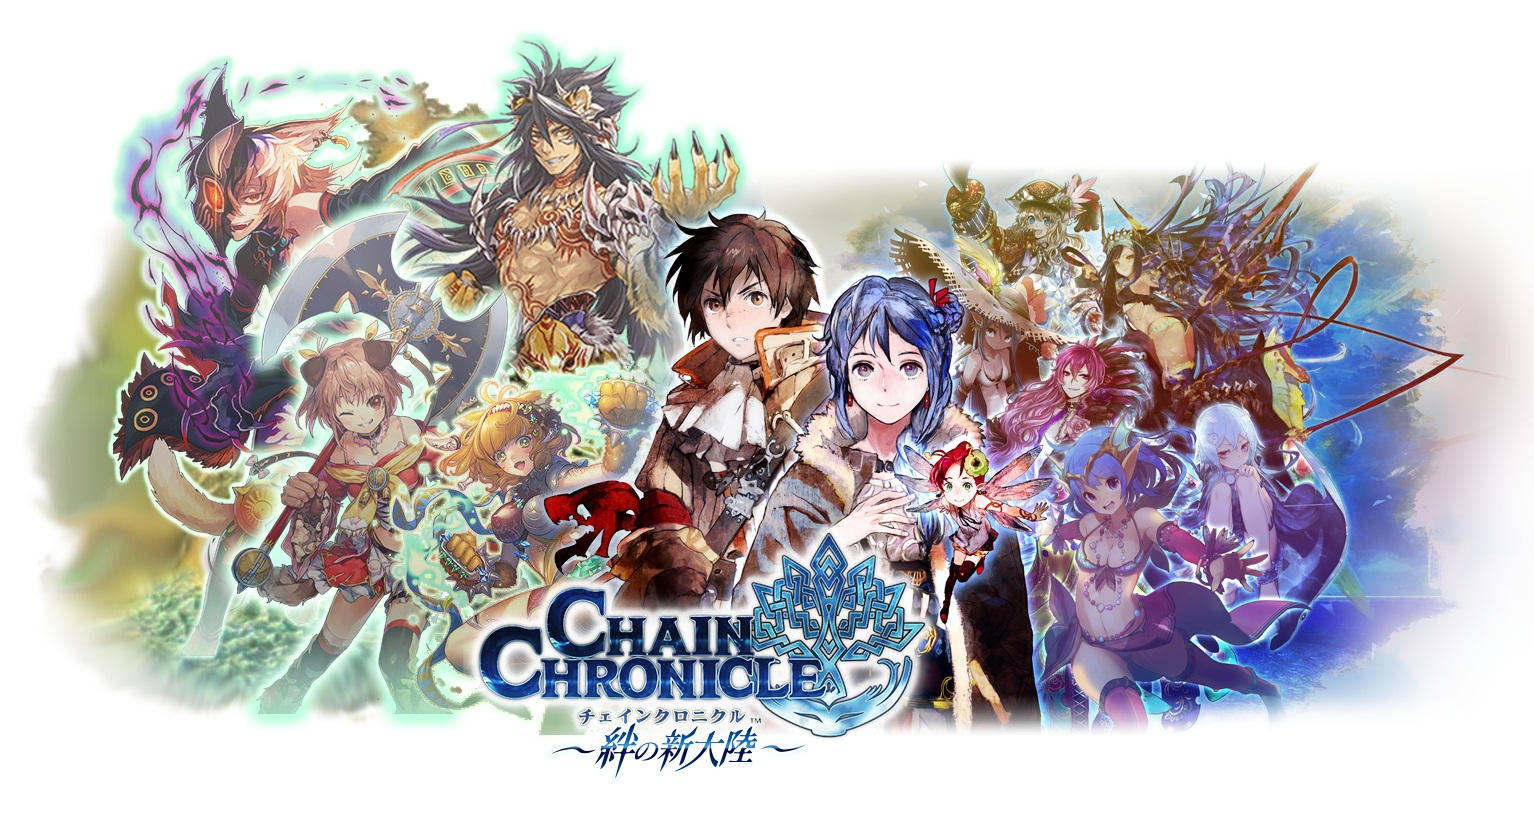 Chain chronicle movie part 1 720p anime complete sub indo